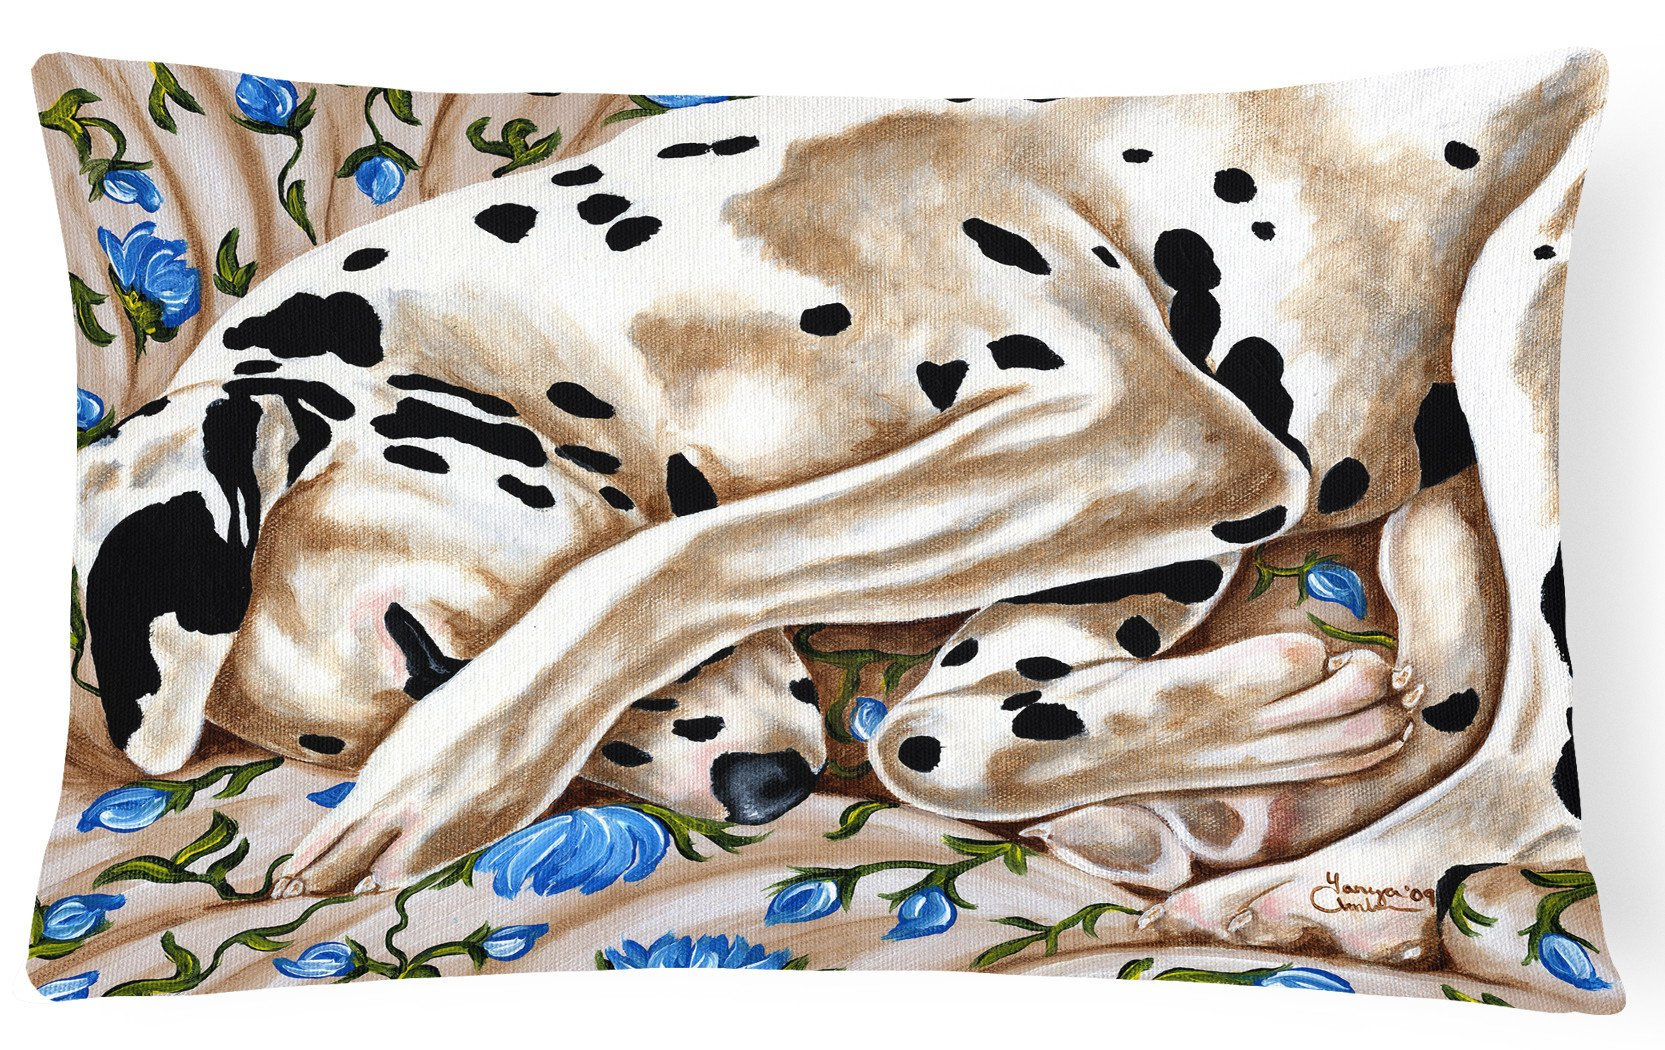 Bed of Roses Dalmatian Fabric Decorative Pillow AMB1407PW1216 by Caroline's Treasures